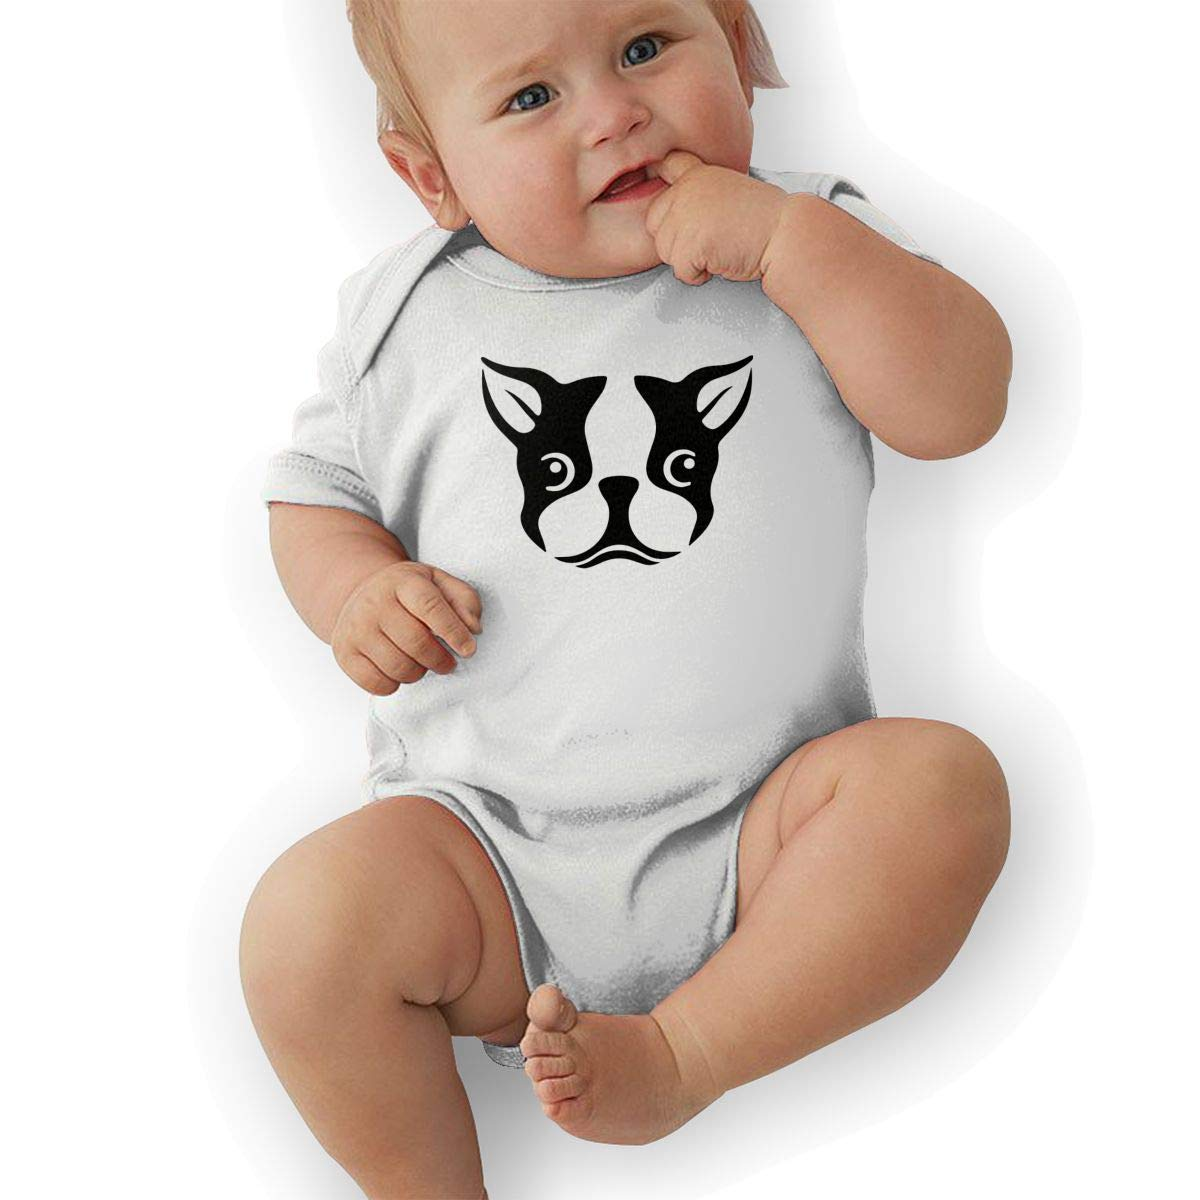 Soft Boston Terrier Face Crawler U88oi-8 Short Sleeve Cotton Rompers for Baby Boys and Girls